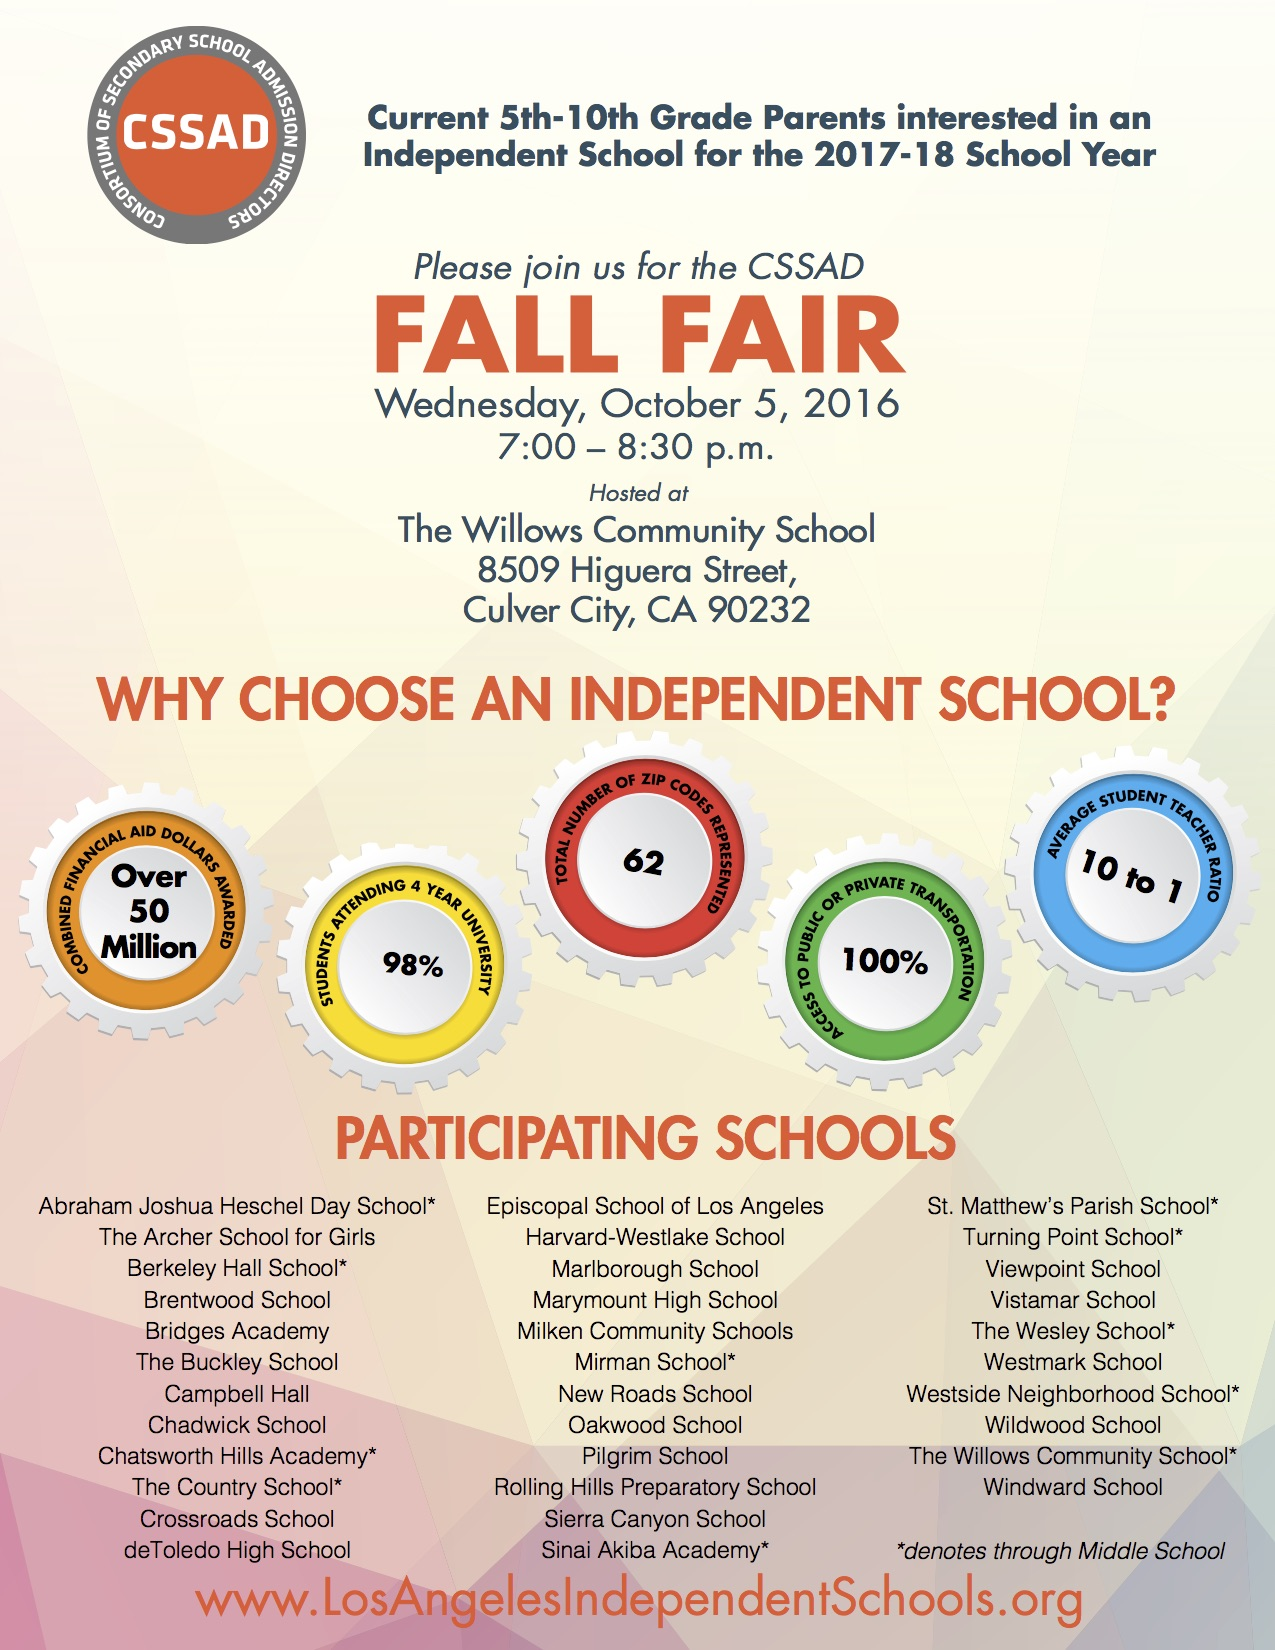 cssad_fall2016fair_updatedsept14